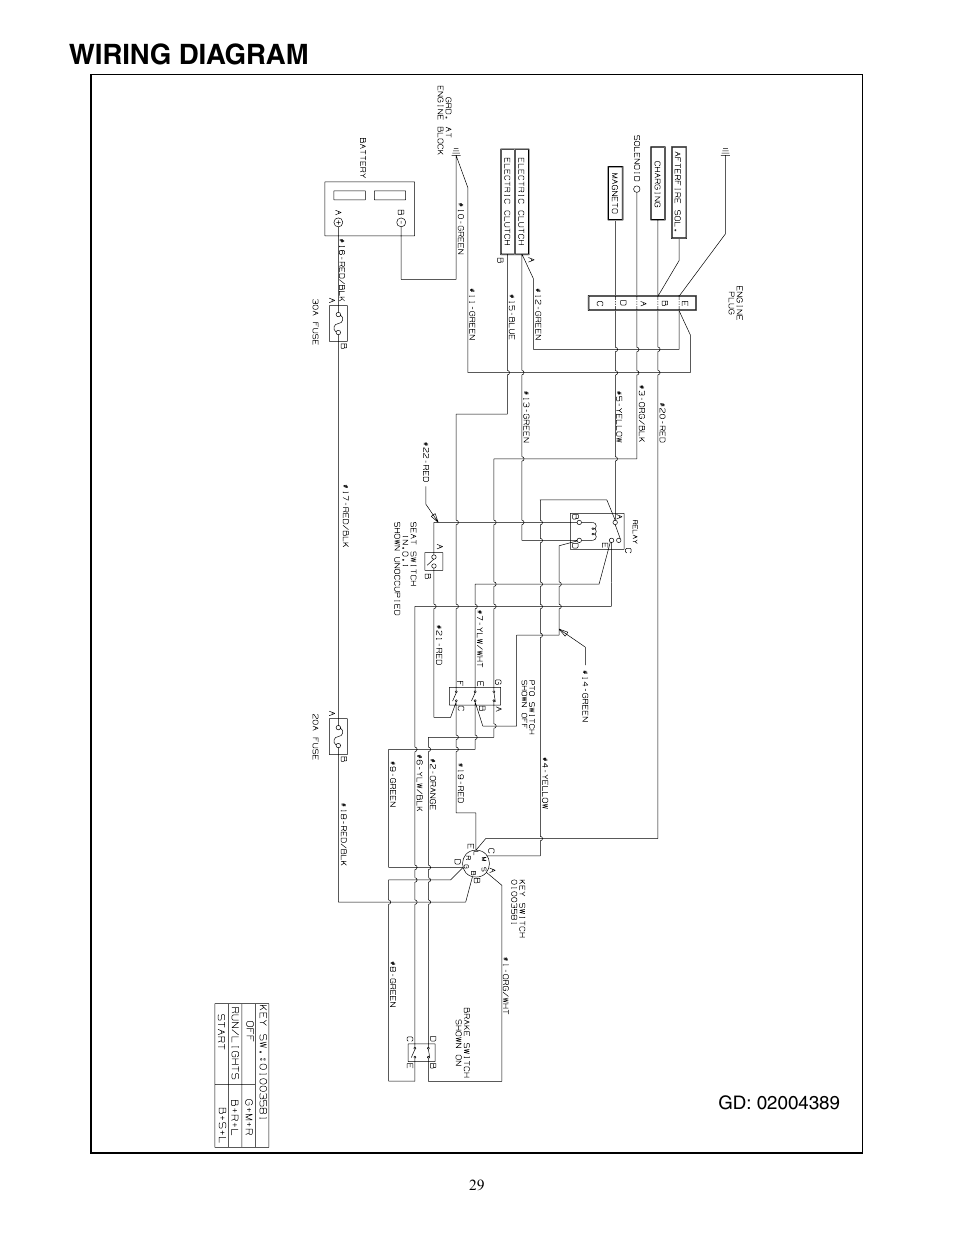 Wiring Diagram Cub Cadet 53ah8st5050 User Manual Page 29 32 Fuse